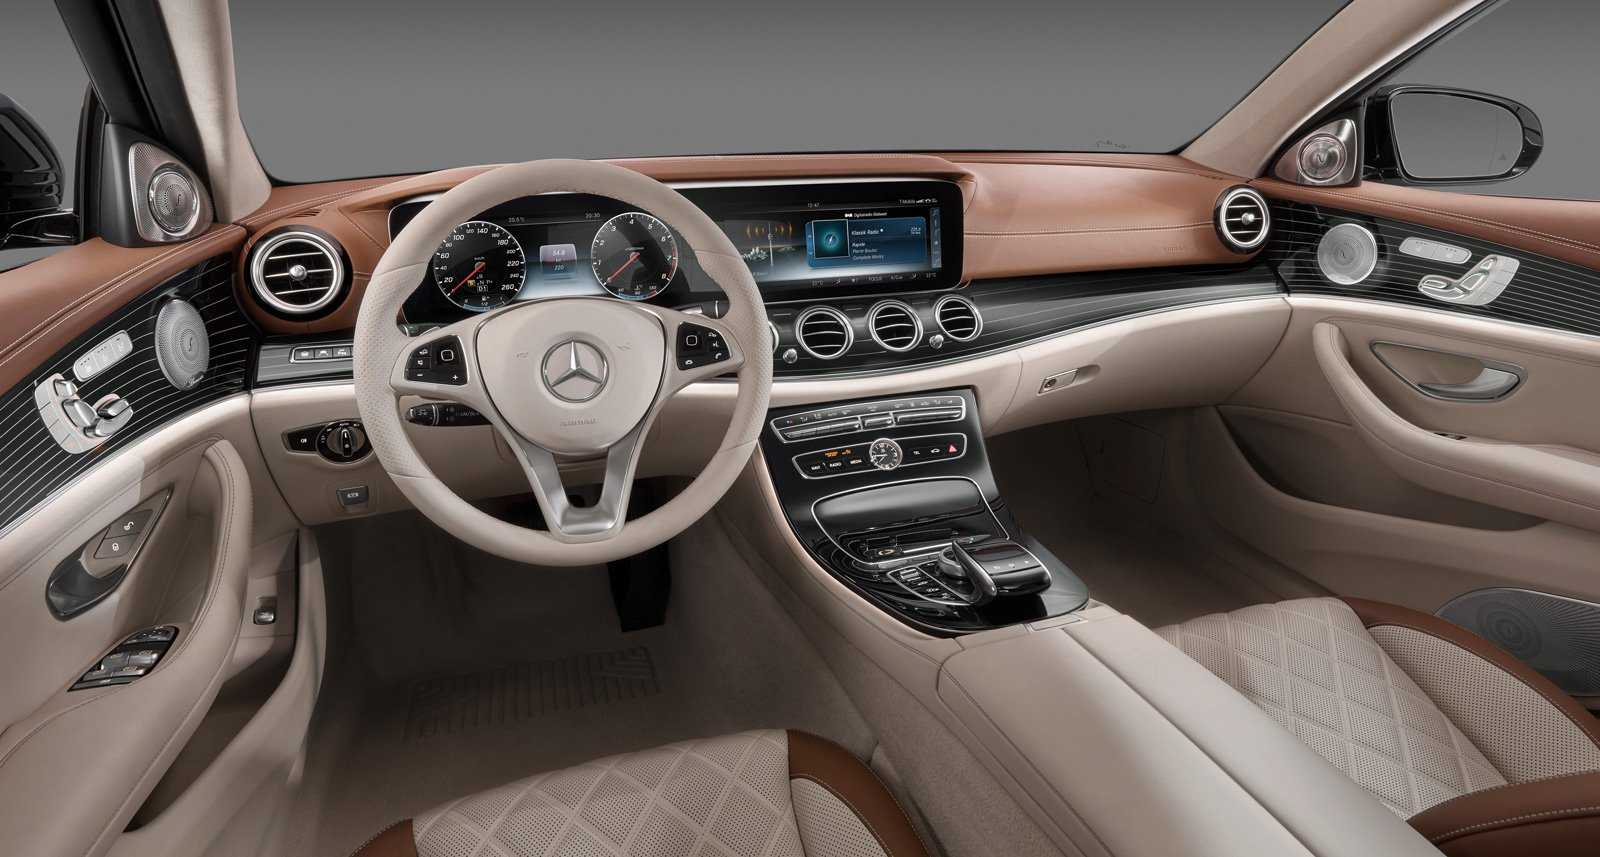 2017 Mercedes E-Class Interiors is Extremely Stylish and Truly Next Gen